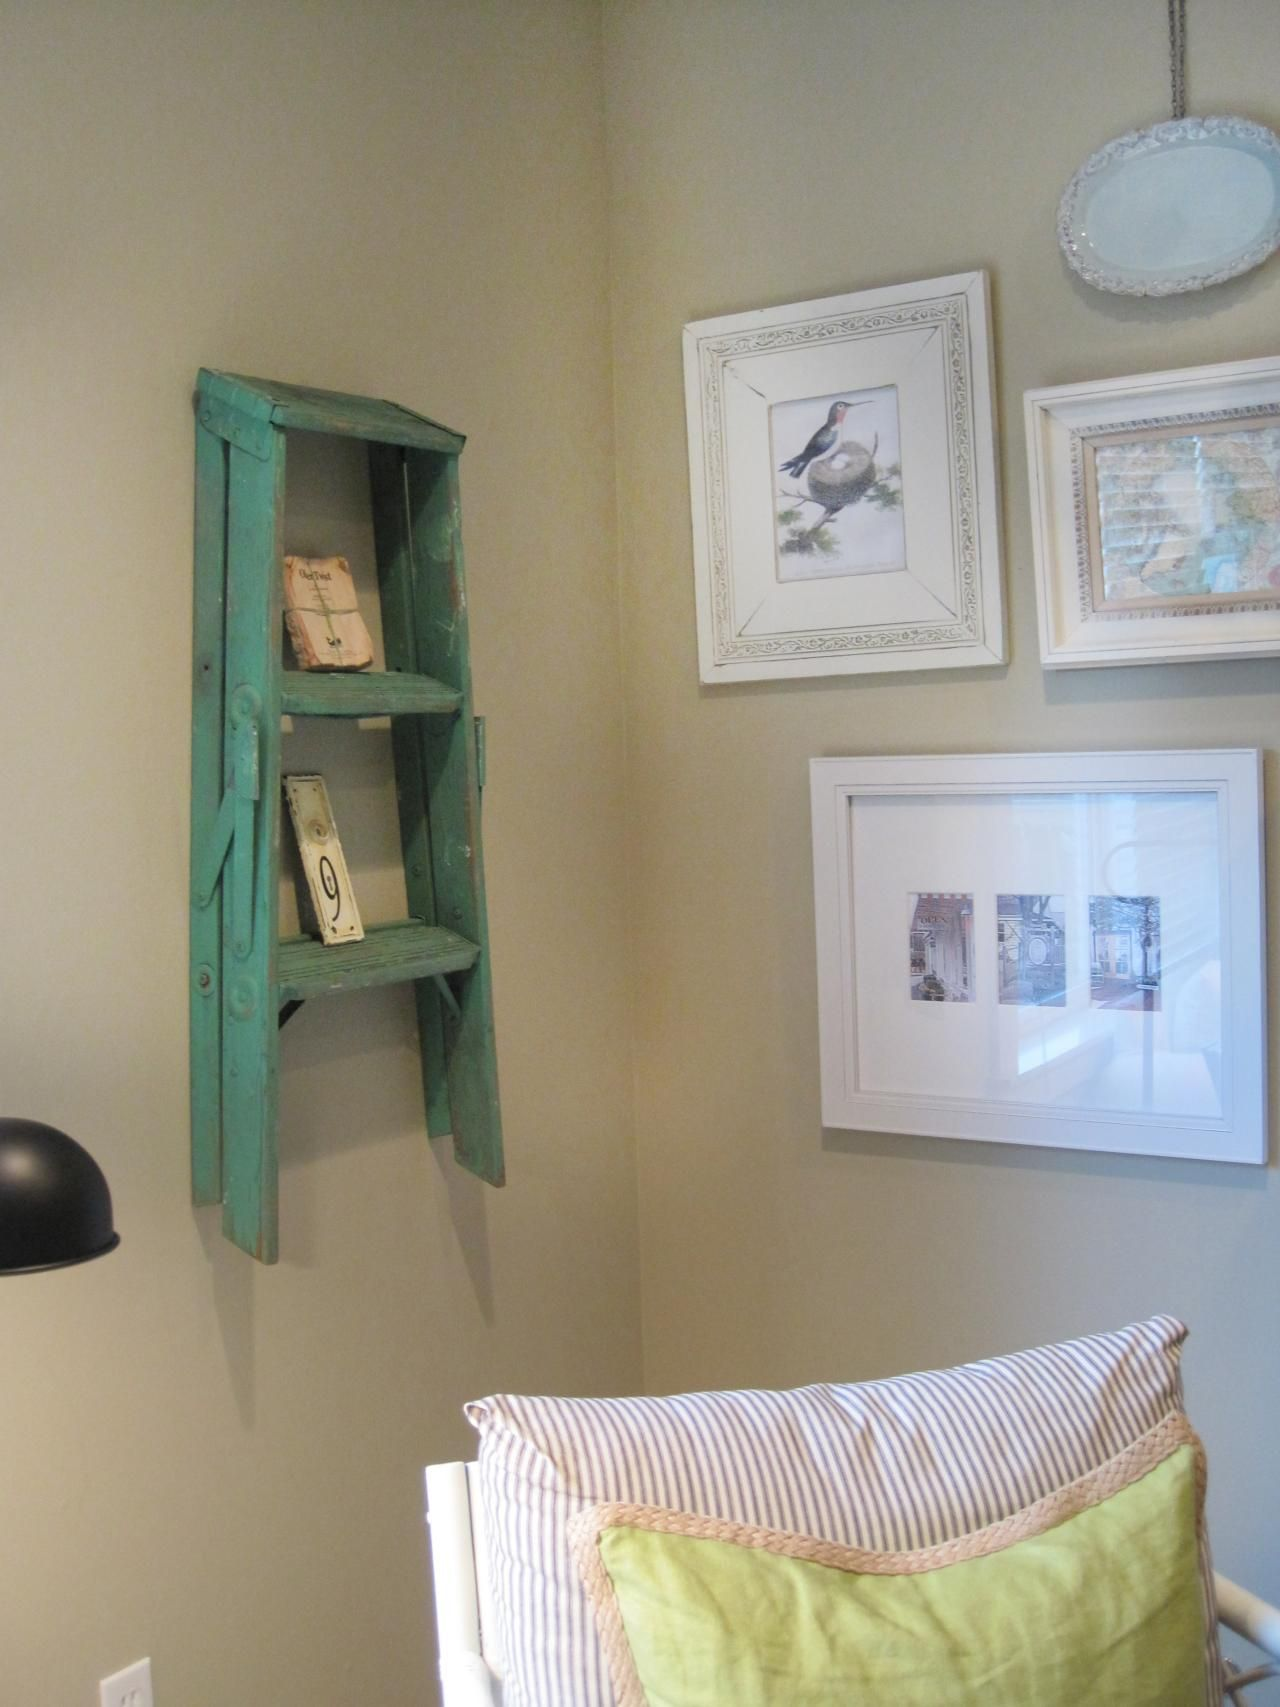 12 New Uses for Old Furniture | Hgtv, Decorating and Repurposed